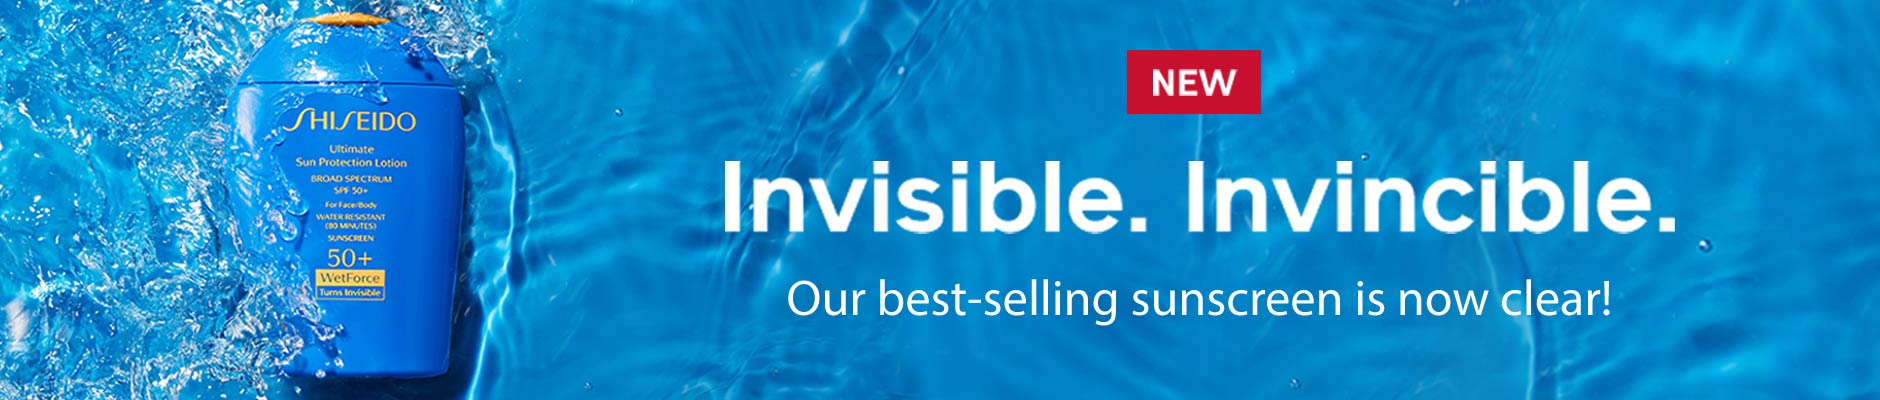 New: Invisible. Invincible. Our best-selling sunscreen is now clear